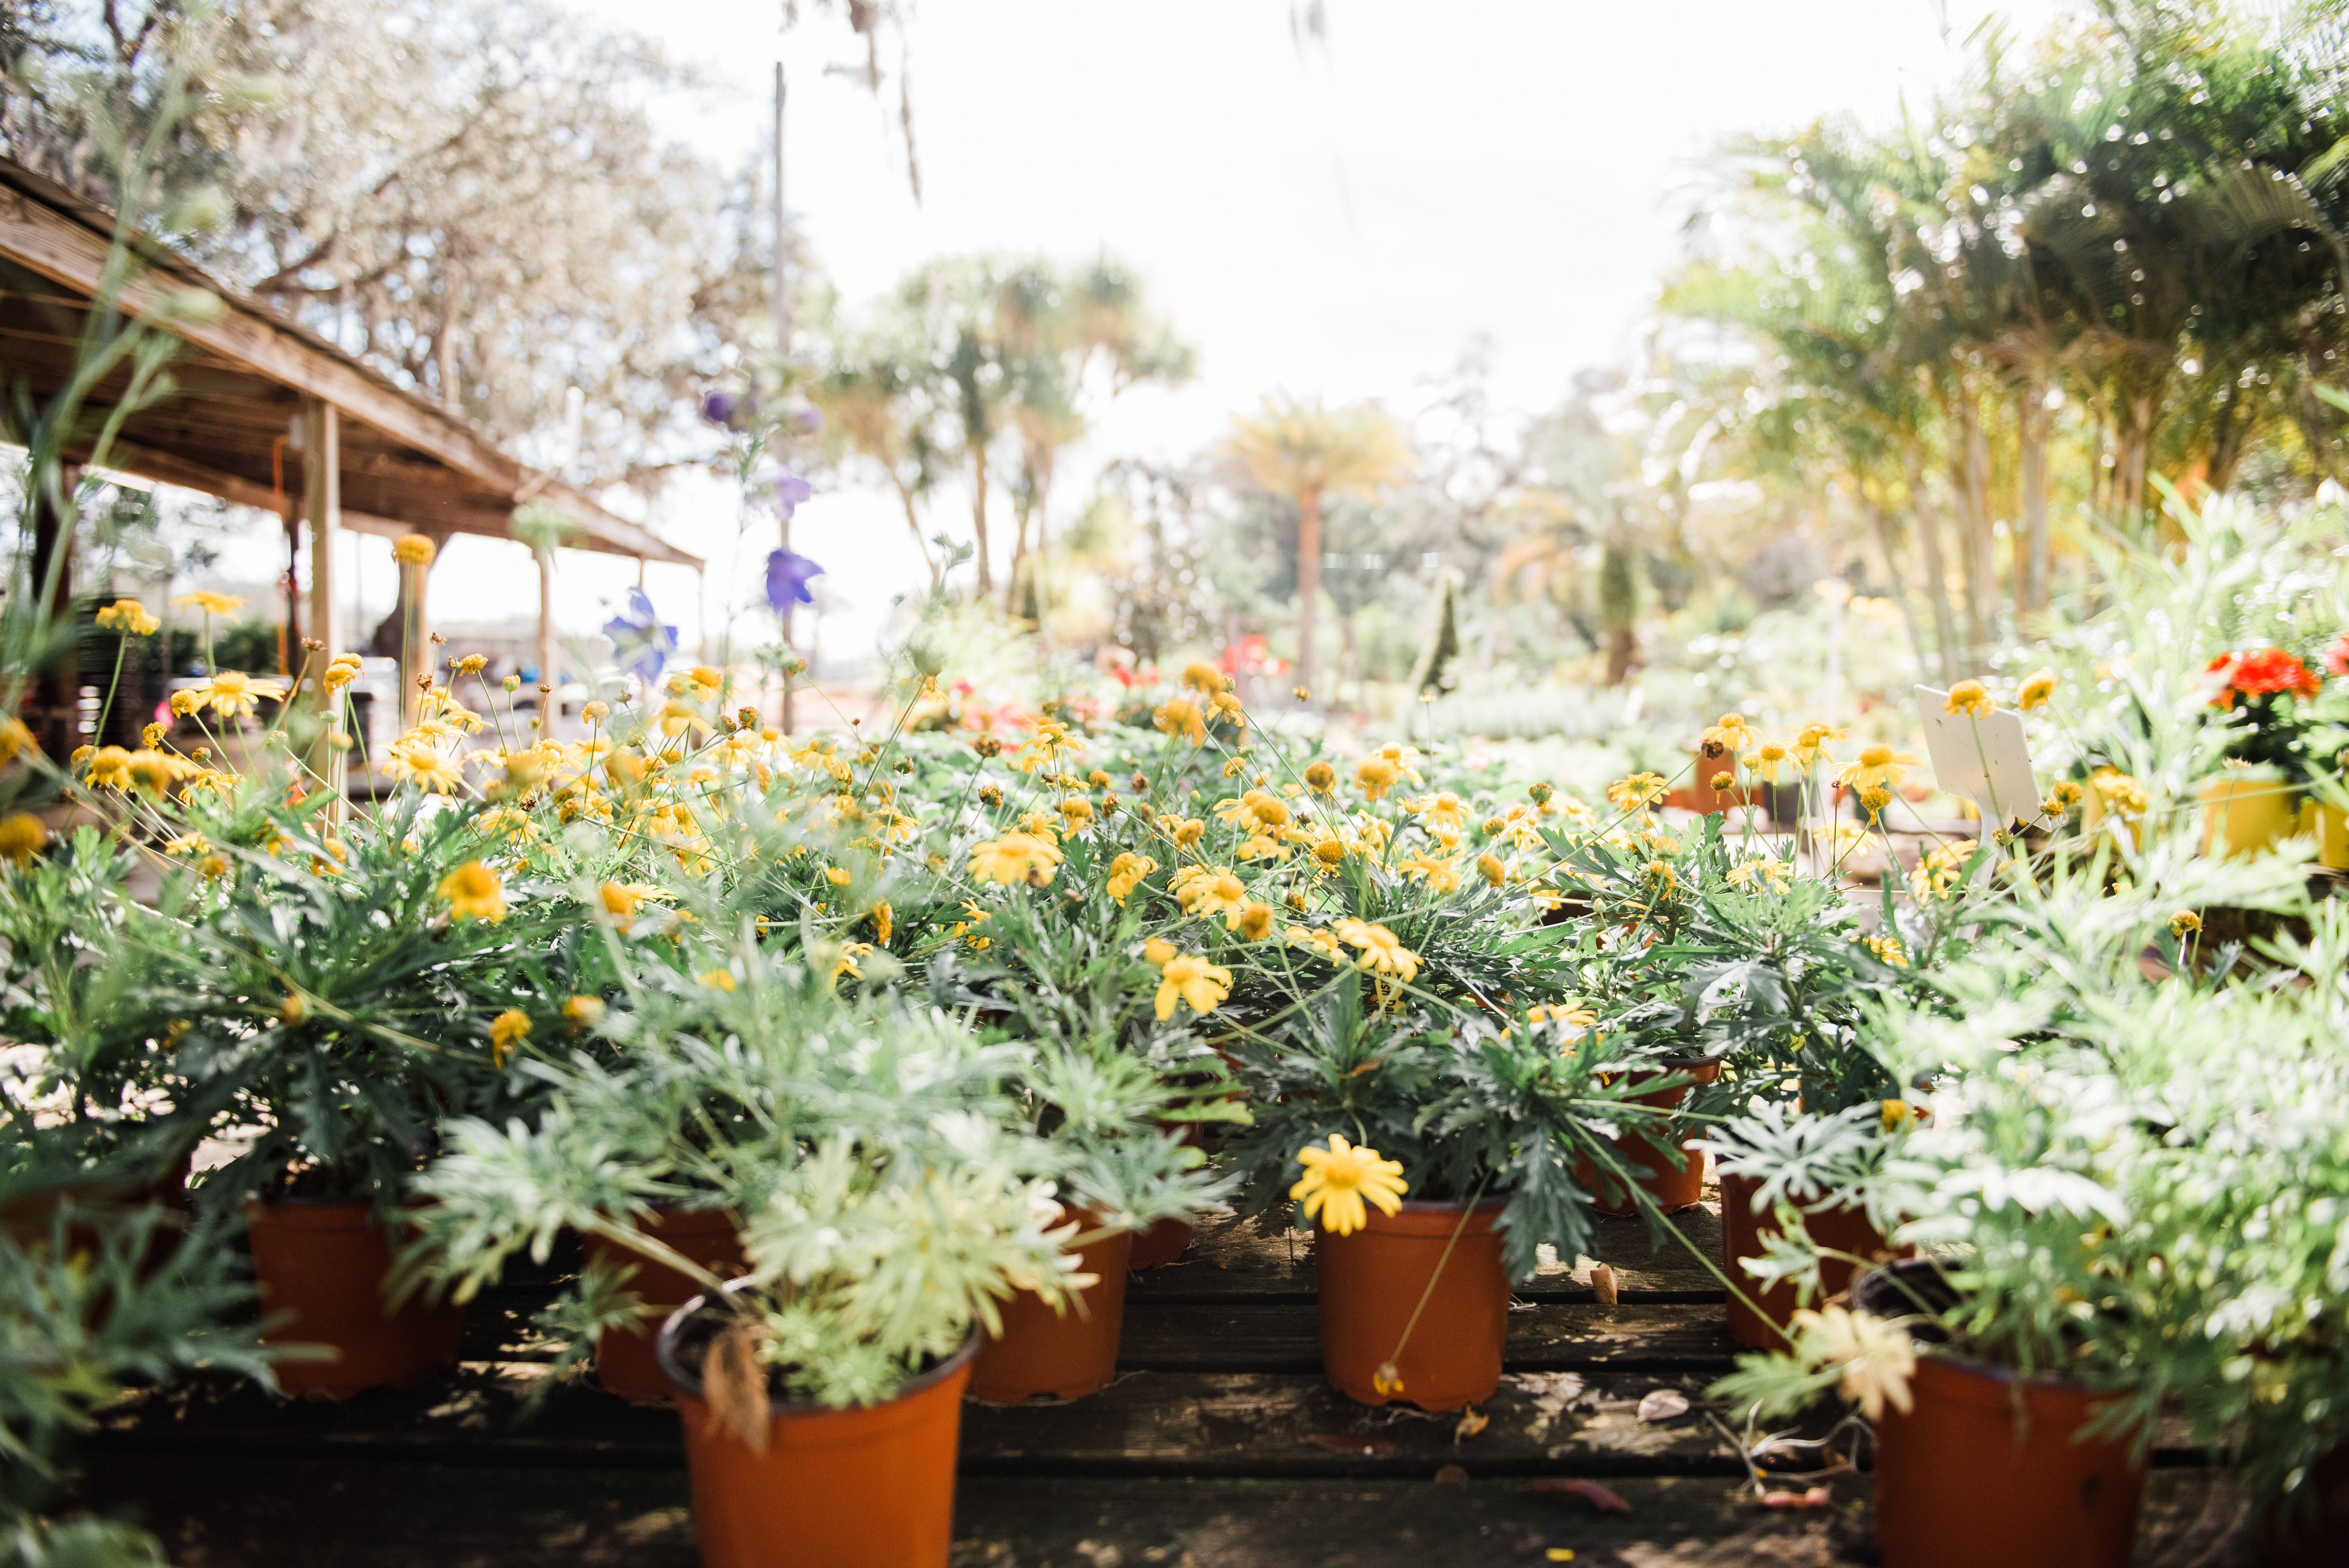 Over 35 Acres filled with plants, trees, flowers and more